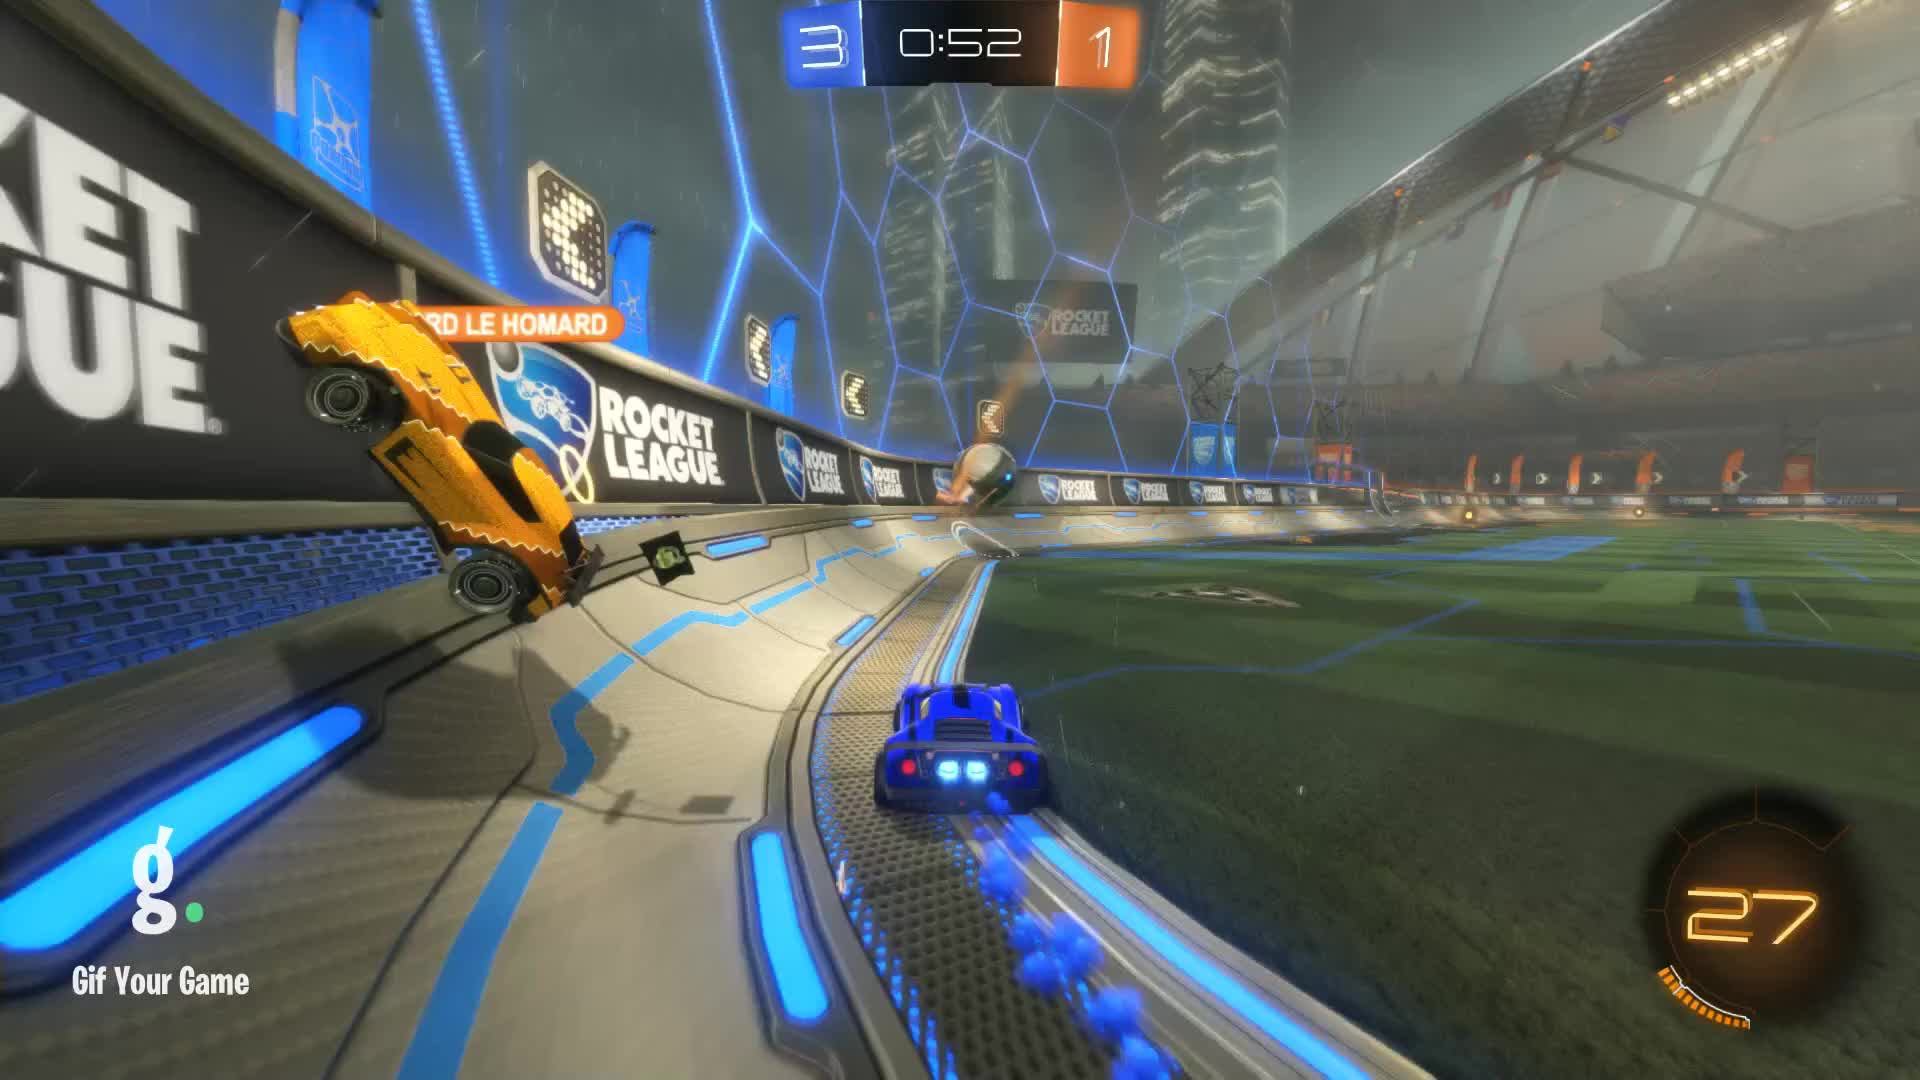 Gif Your Game, GifYourGame, Goal, Ranso, Rocket League, RocketLeague, Goal 5: Ranso GIFs